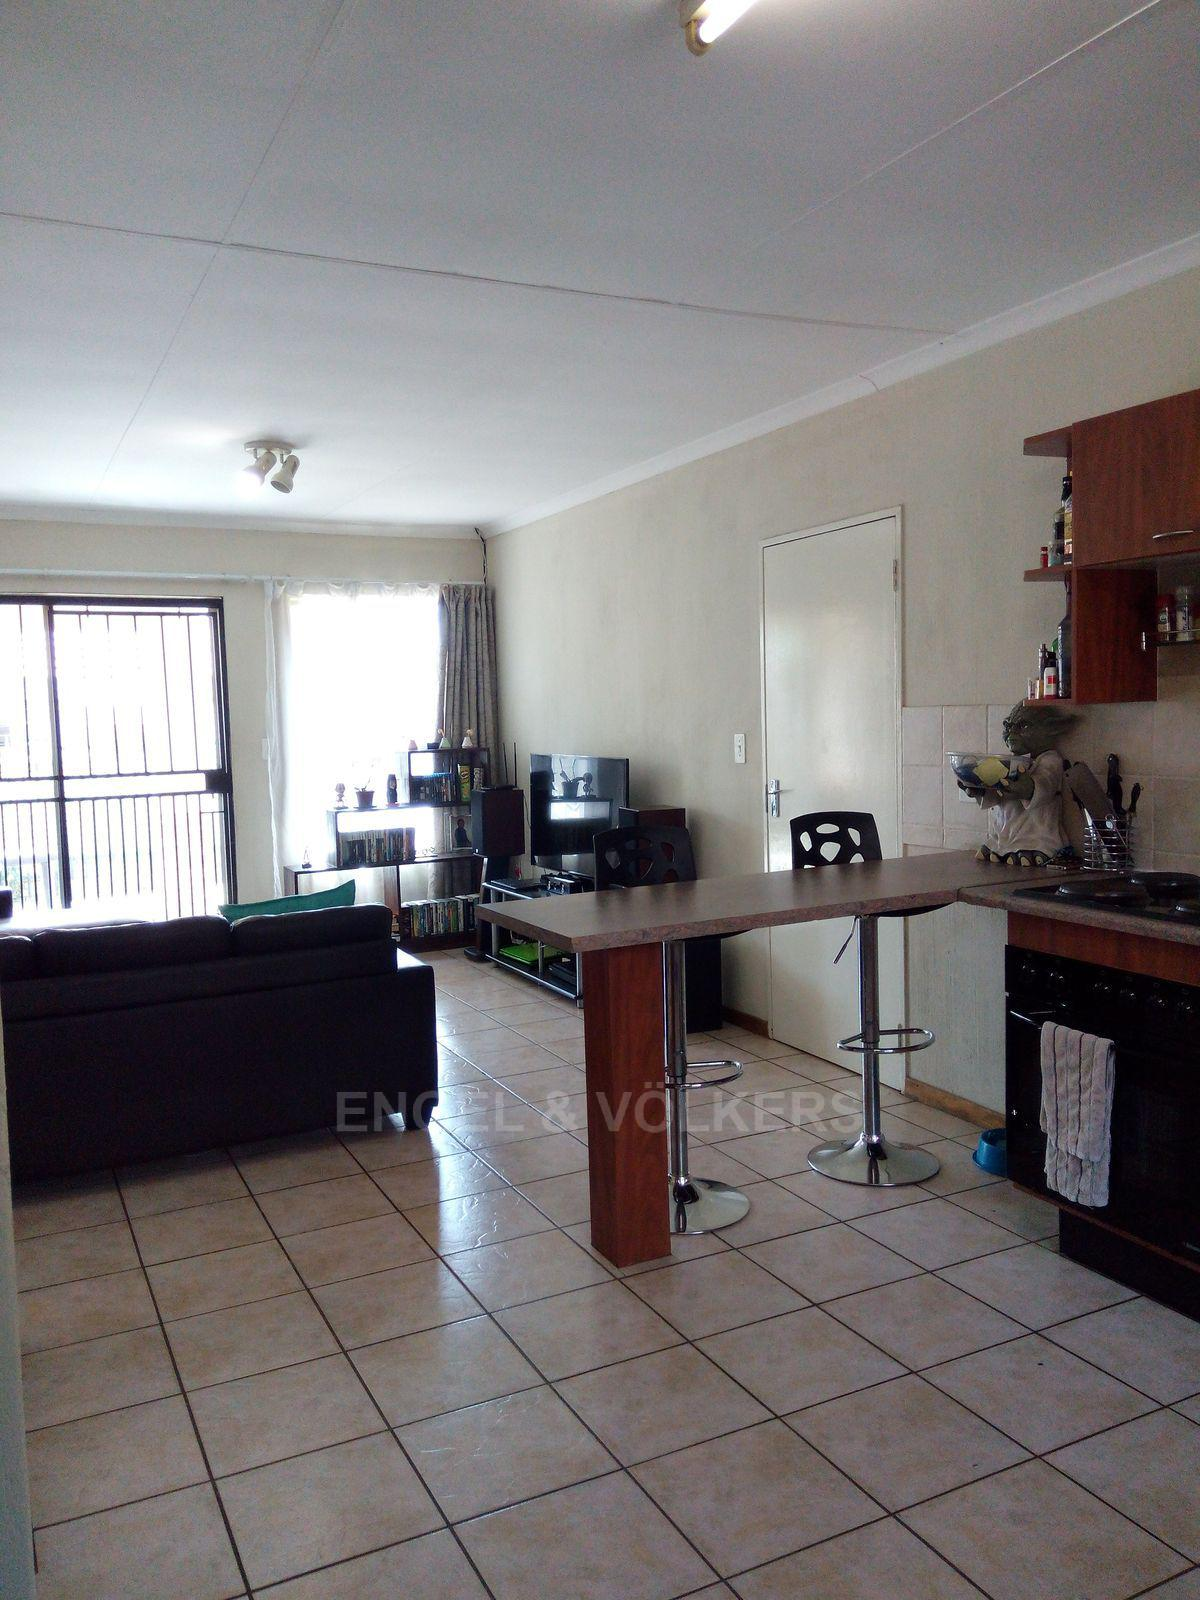 Amberfield property for sale. Ref No: 13537795. Picture no 2